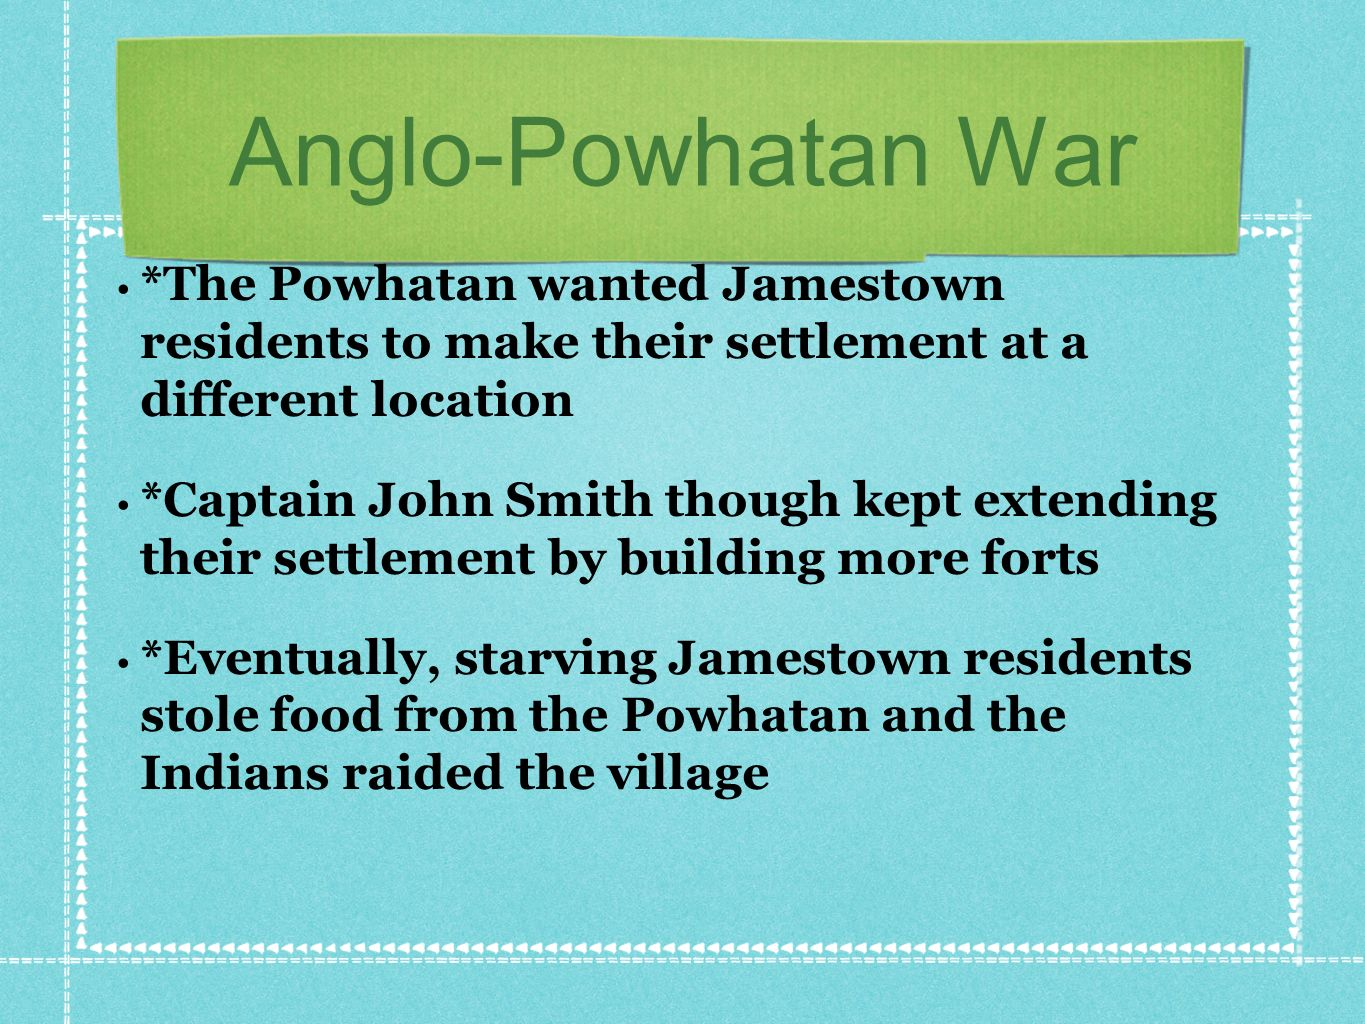 Anglo-Powhatan War *The Powhatan wanted Jamestown residents to make their settlement at a different location.